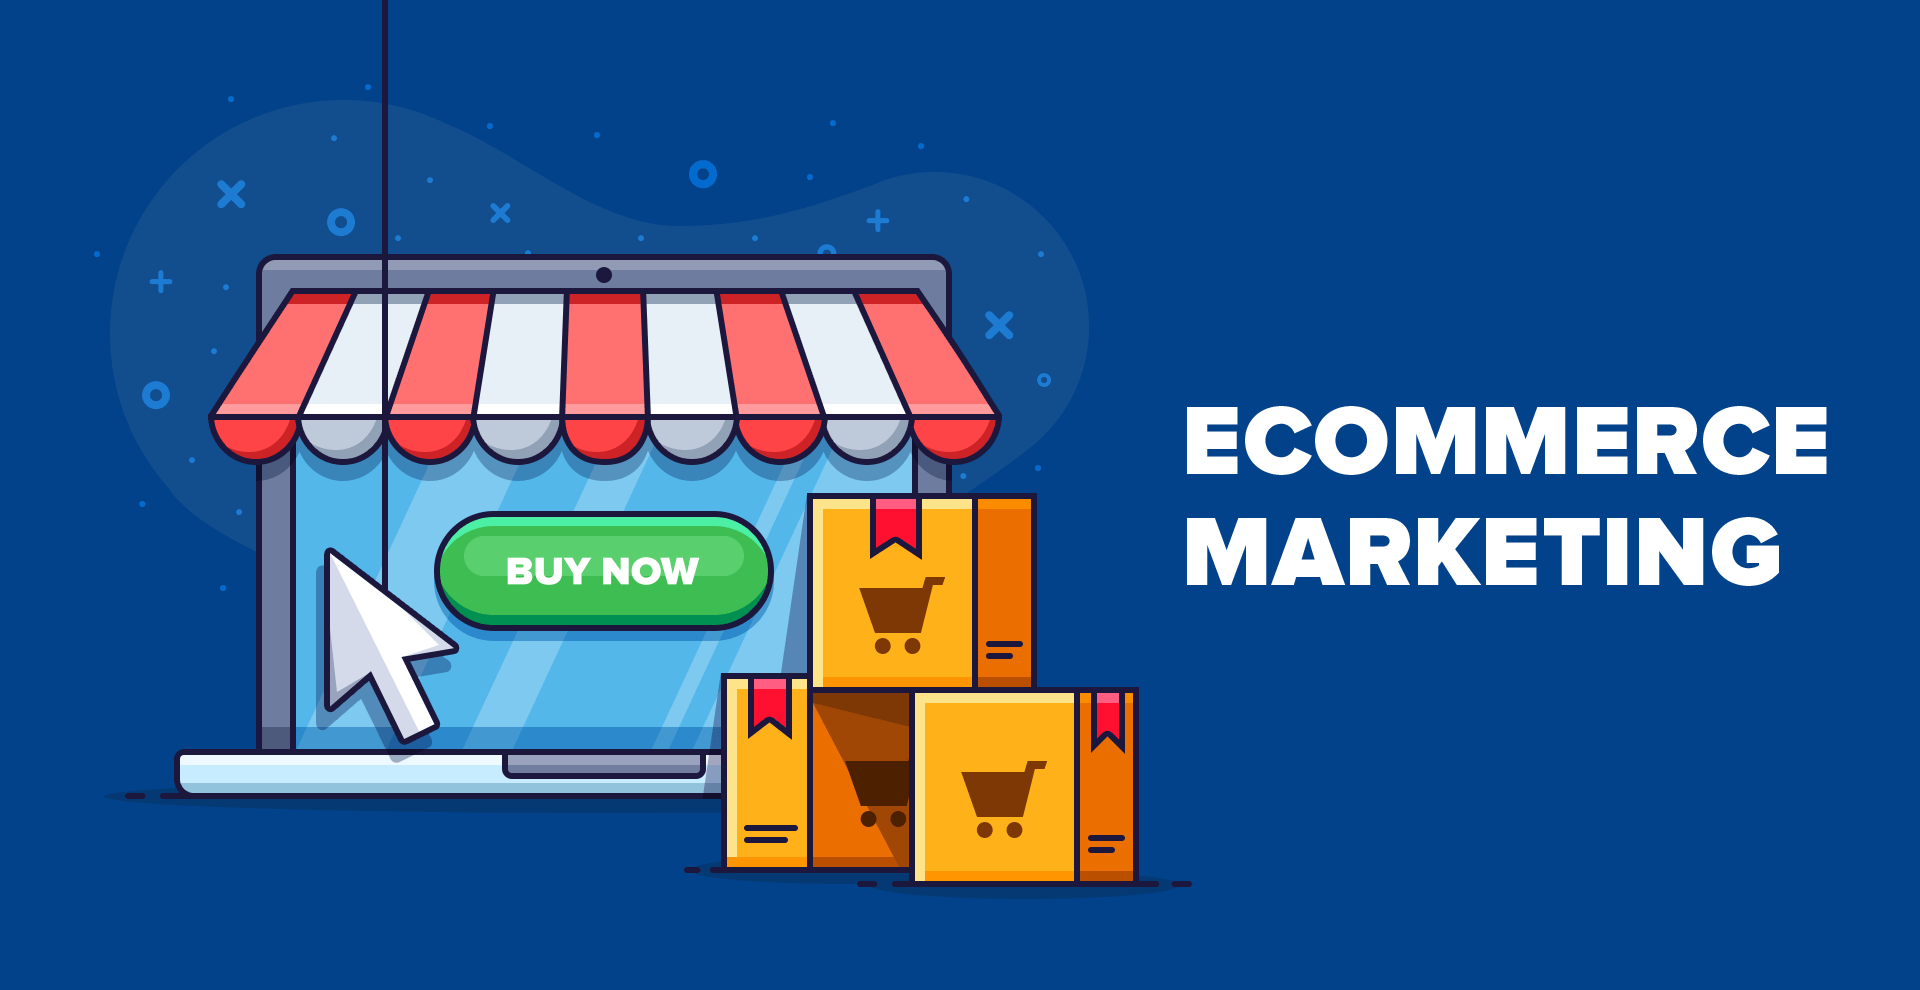 6 Proven Ecommerce Marketing Strategies (Approved by Experts)